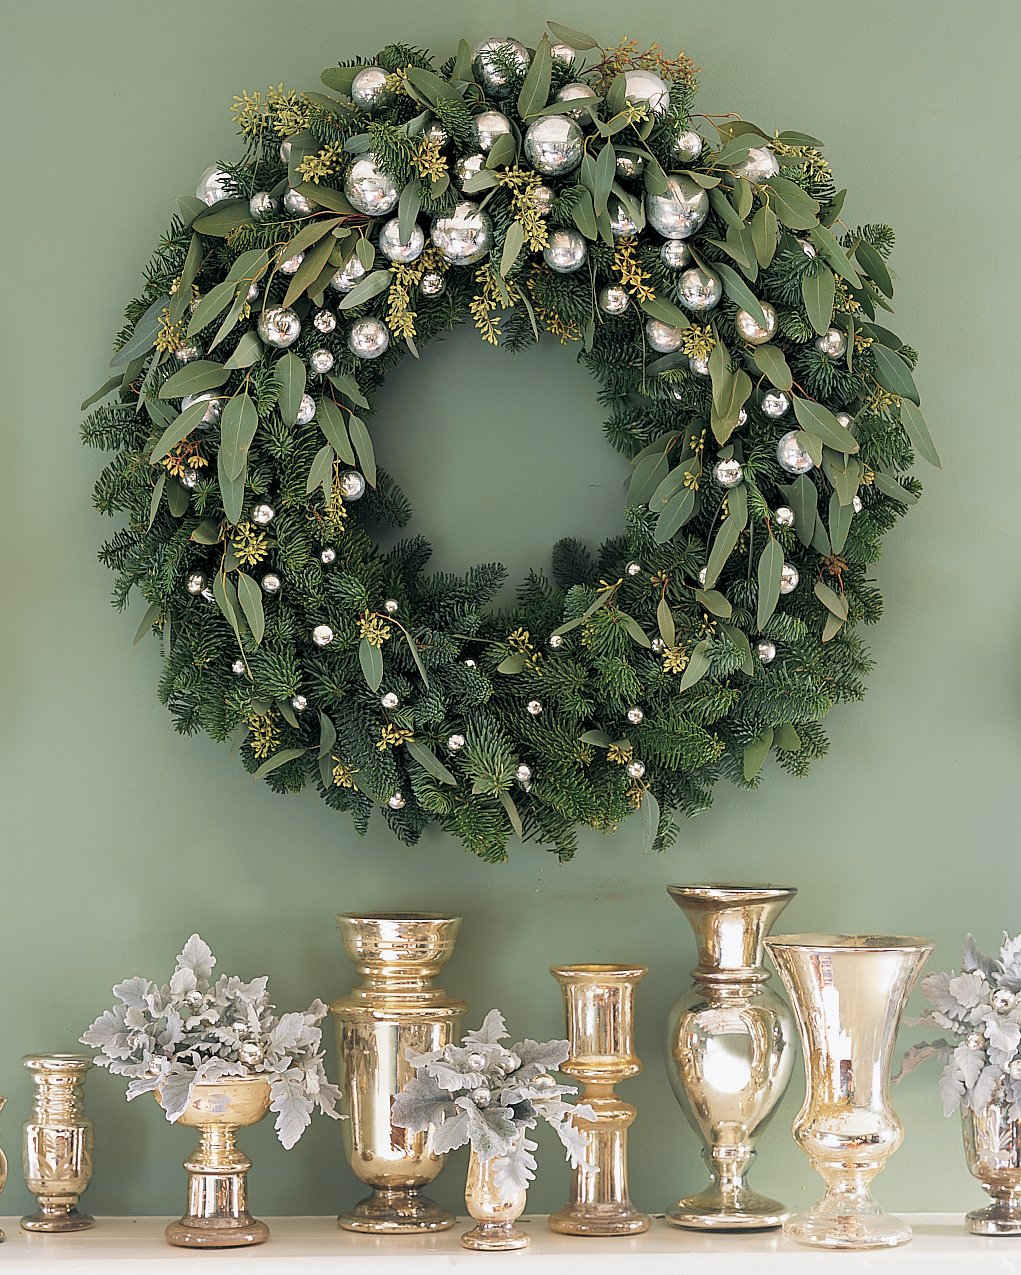 Hanging a Wreath